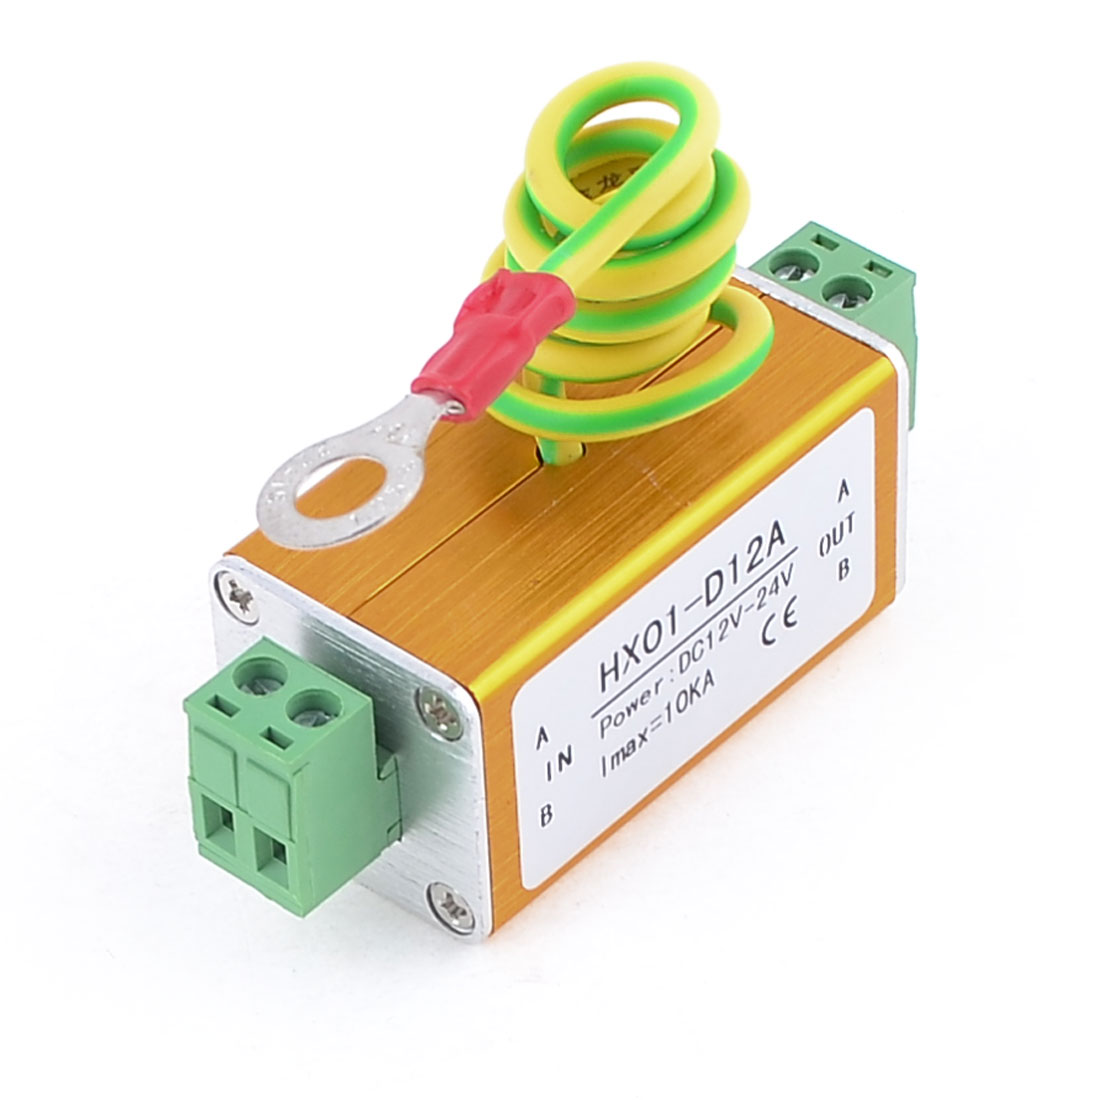 12V-24V-Power-Supply-Surge-Protection-Device-Arrester-w-Earth-Cable